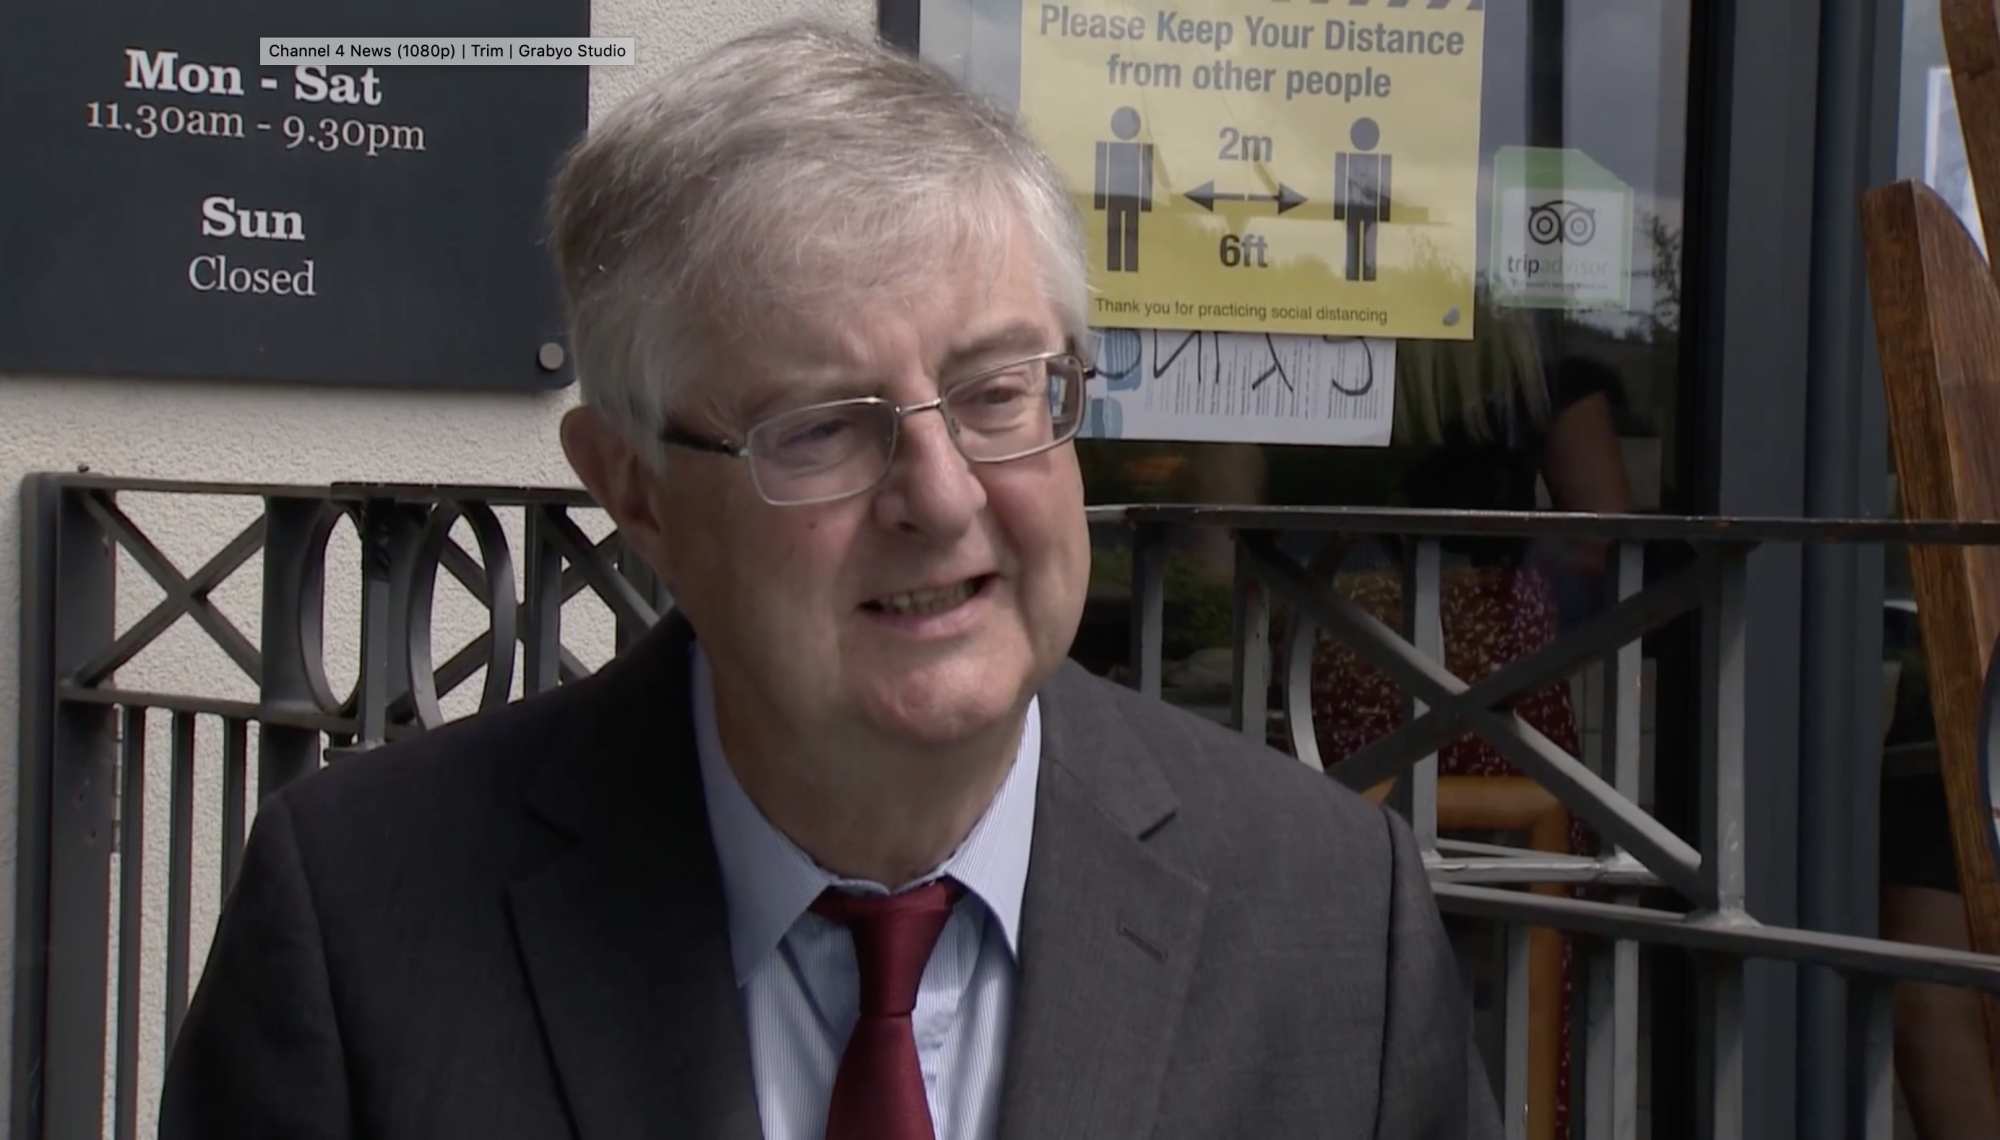 Drakeford says people in Wales should not travel to parts of north-west England unless absolutely necessary - channel 4